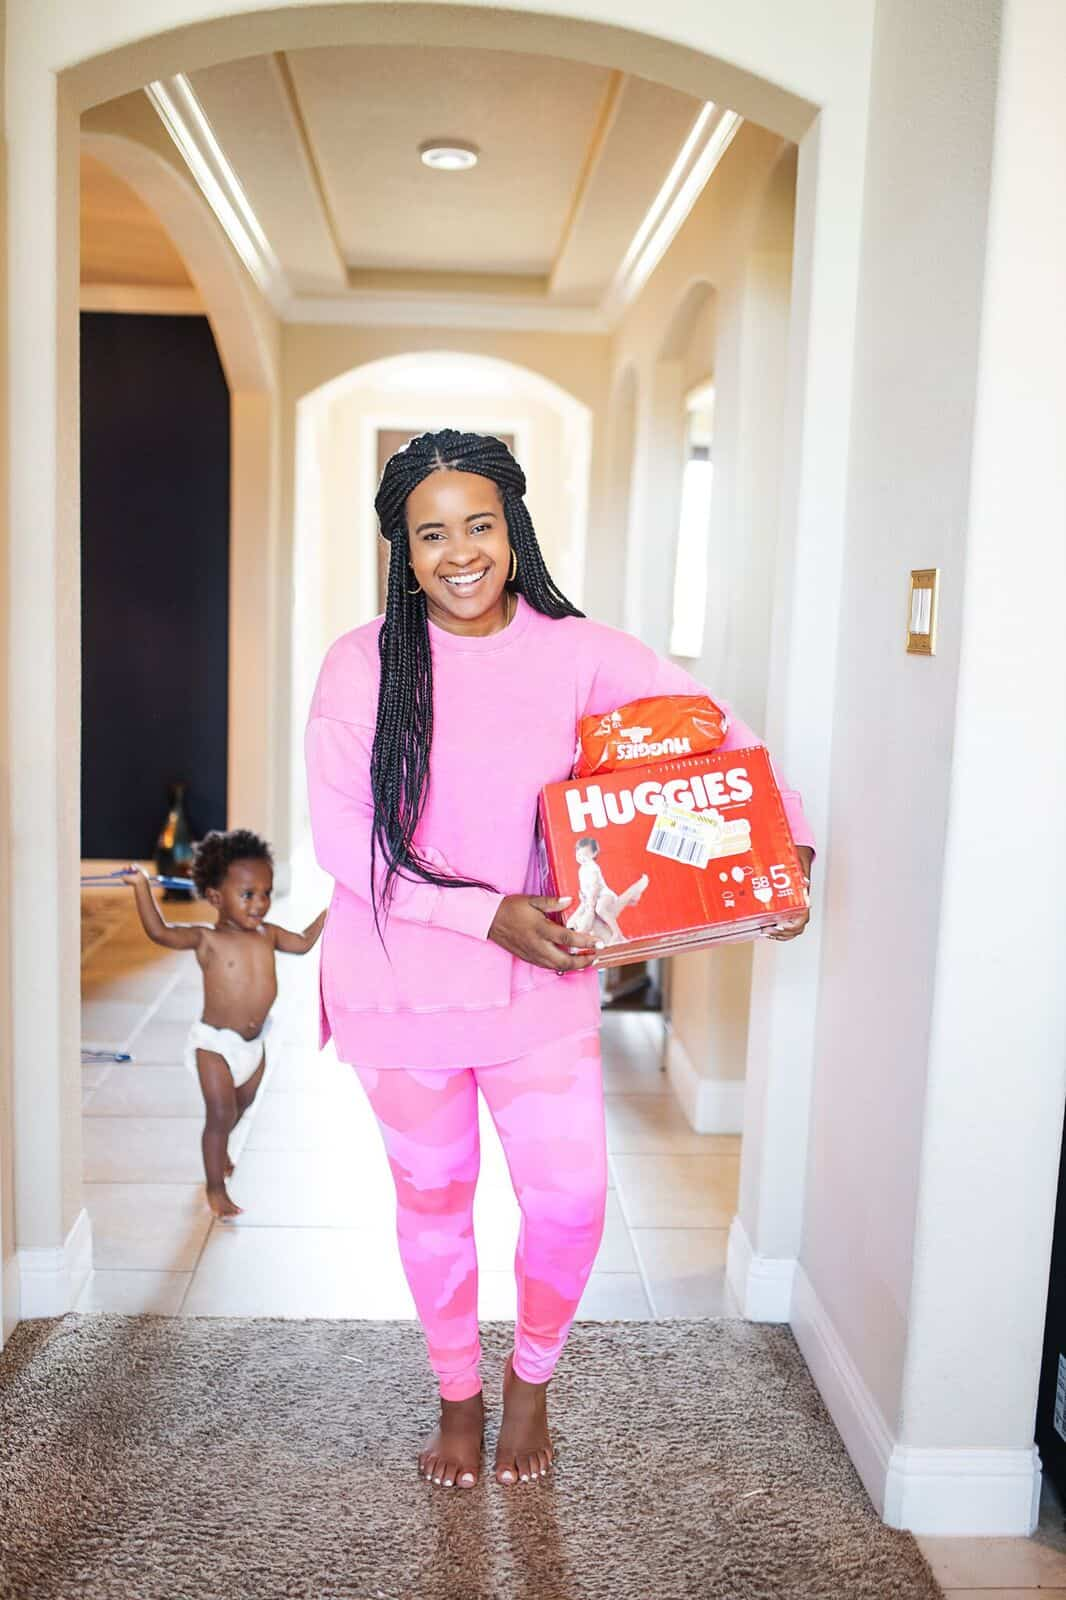 Basic Toddler Essentials by popular life and style blog, Glamorous Versatility: image of a woman holding a box of Huggies diapers.